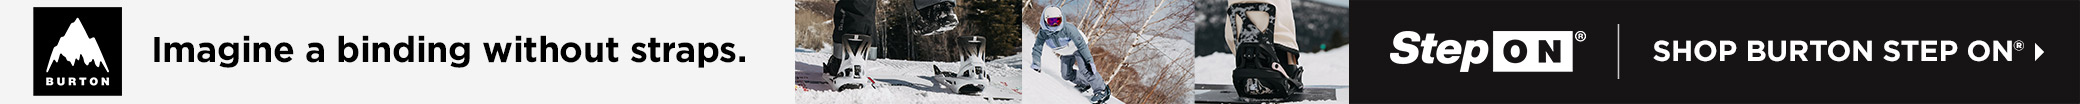 Burton Step On: Imagine a binding without straps.